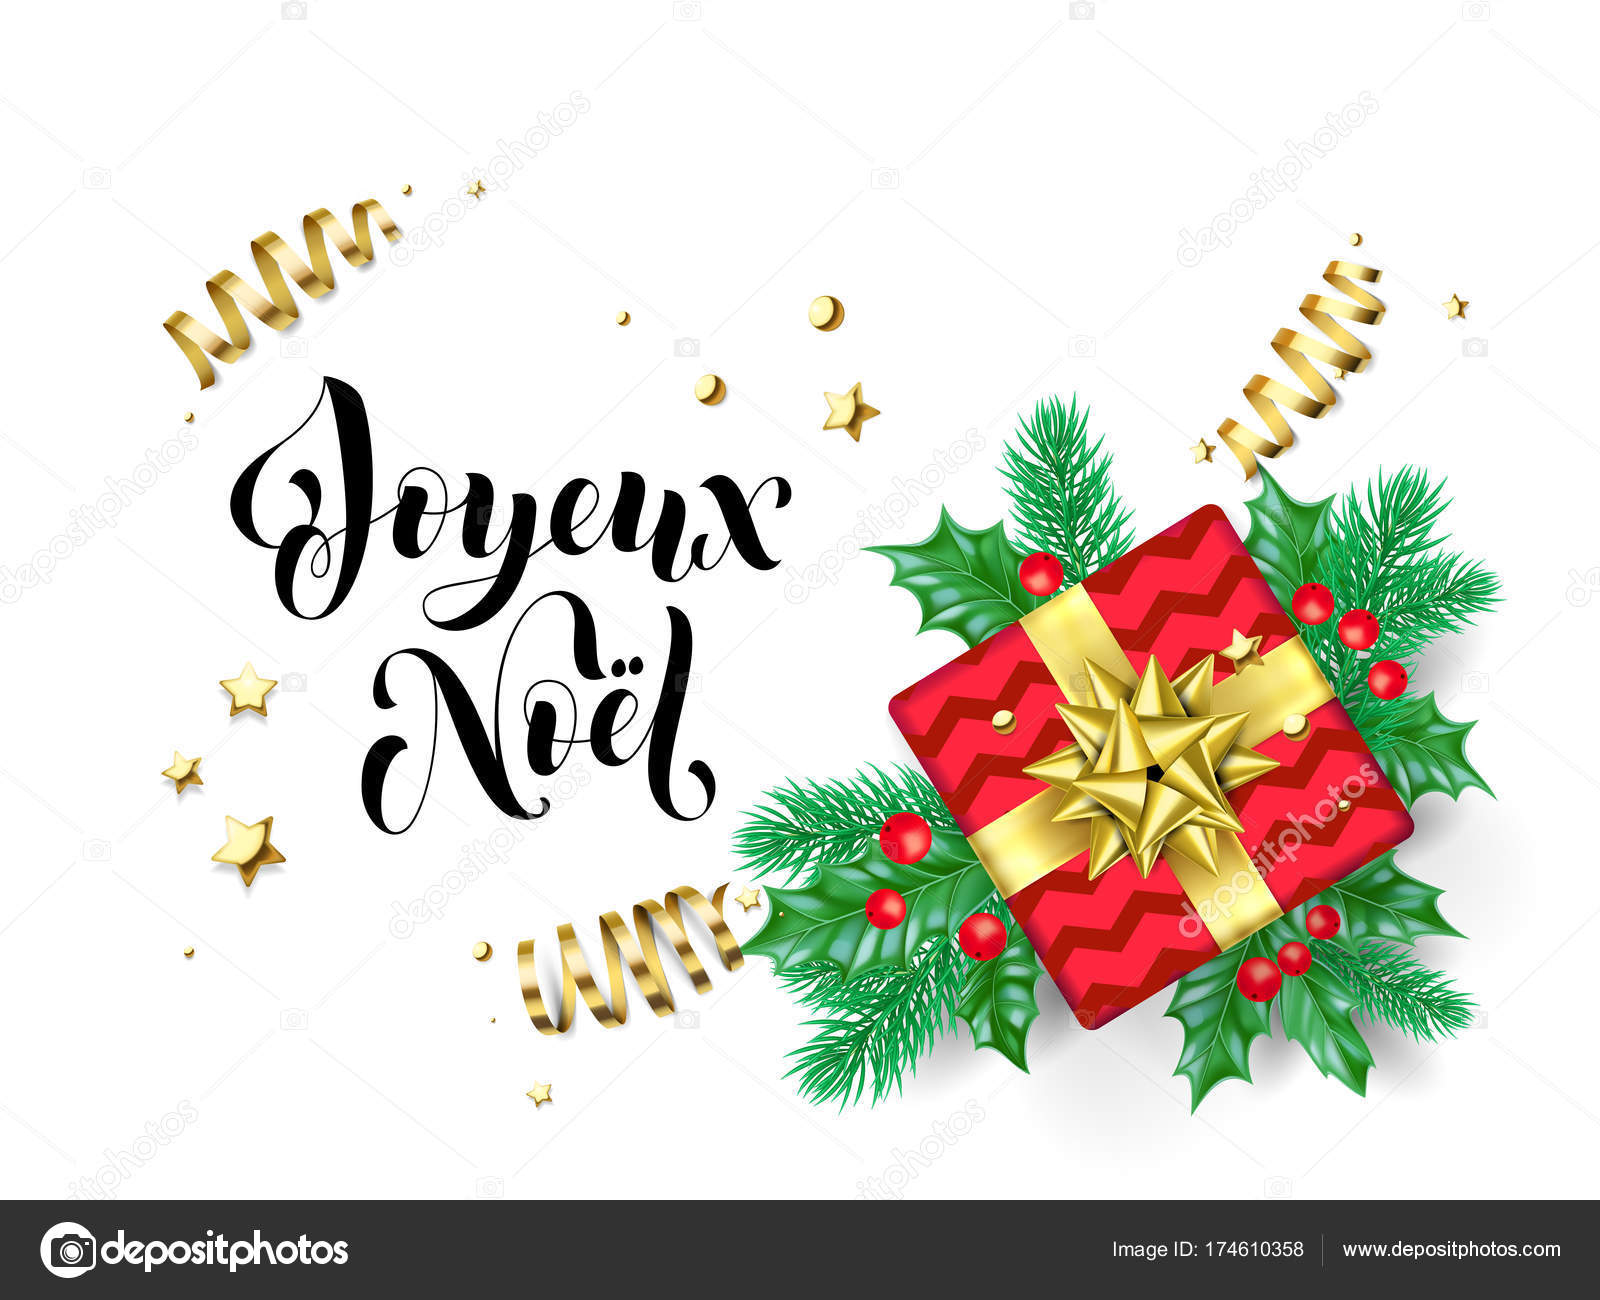 joyeux noel merry christmas french trendy quote calligraphy on white premium background for winter holiday design - Merry Christmas French